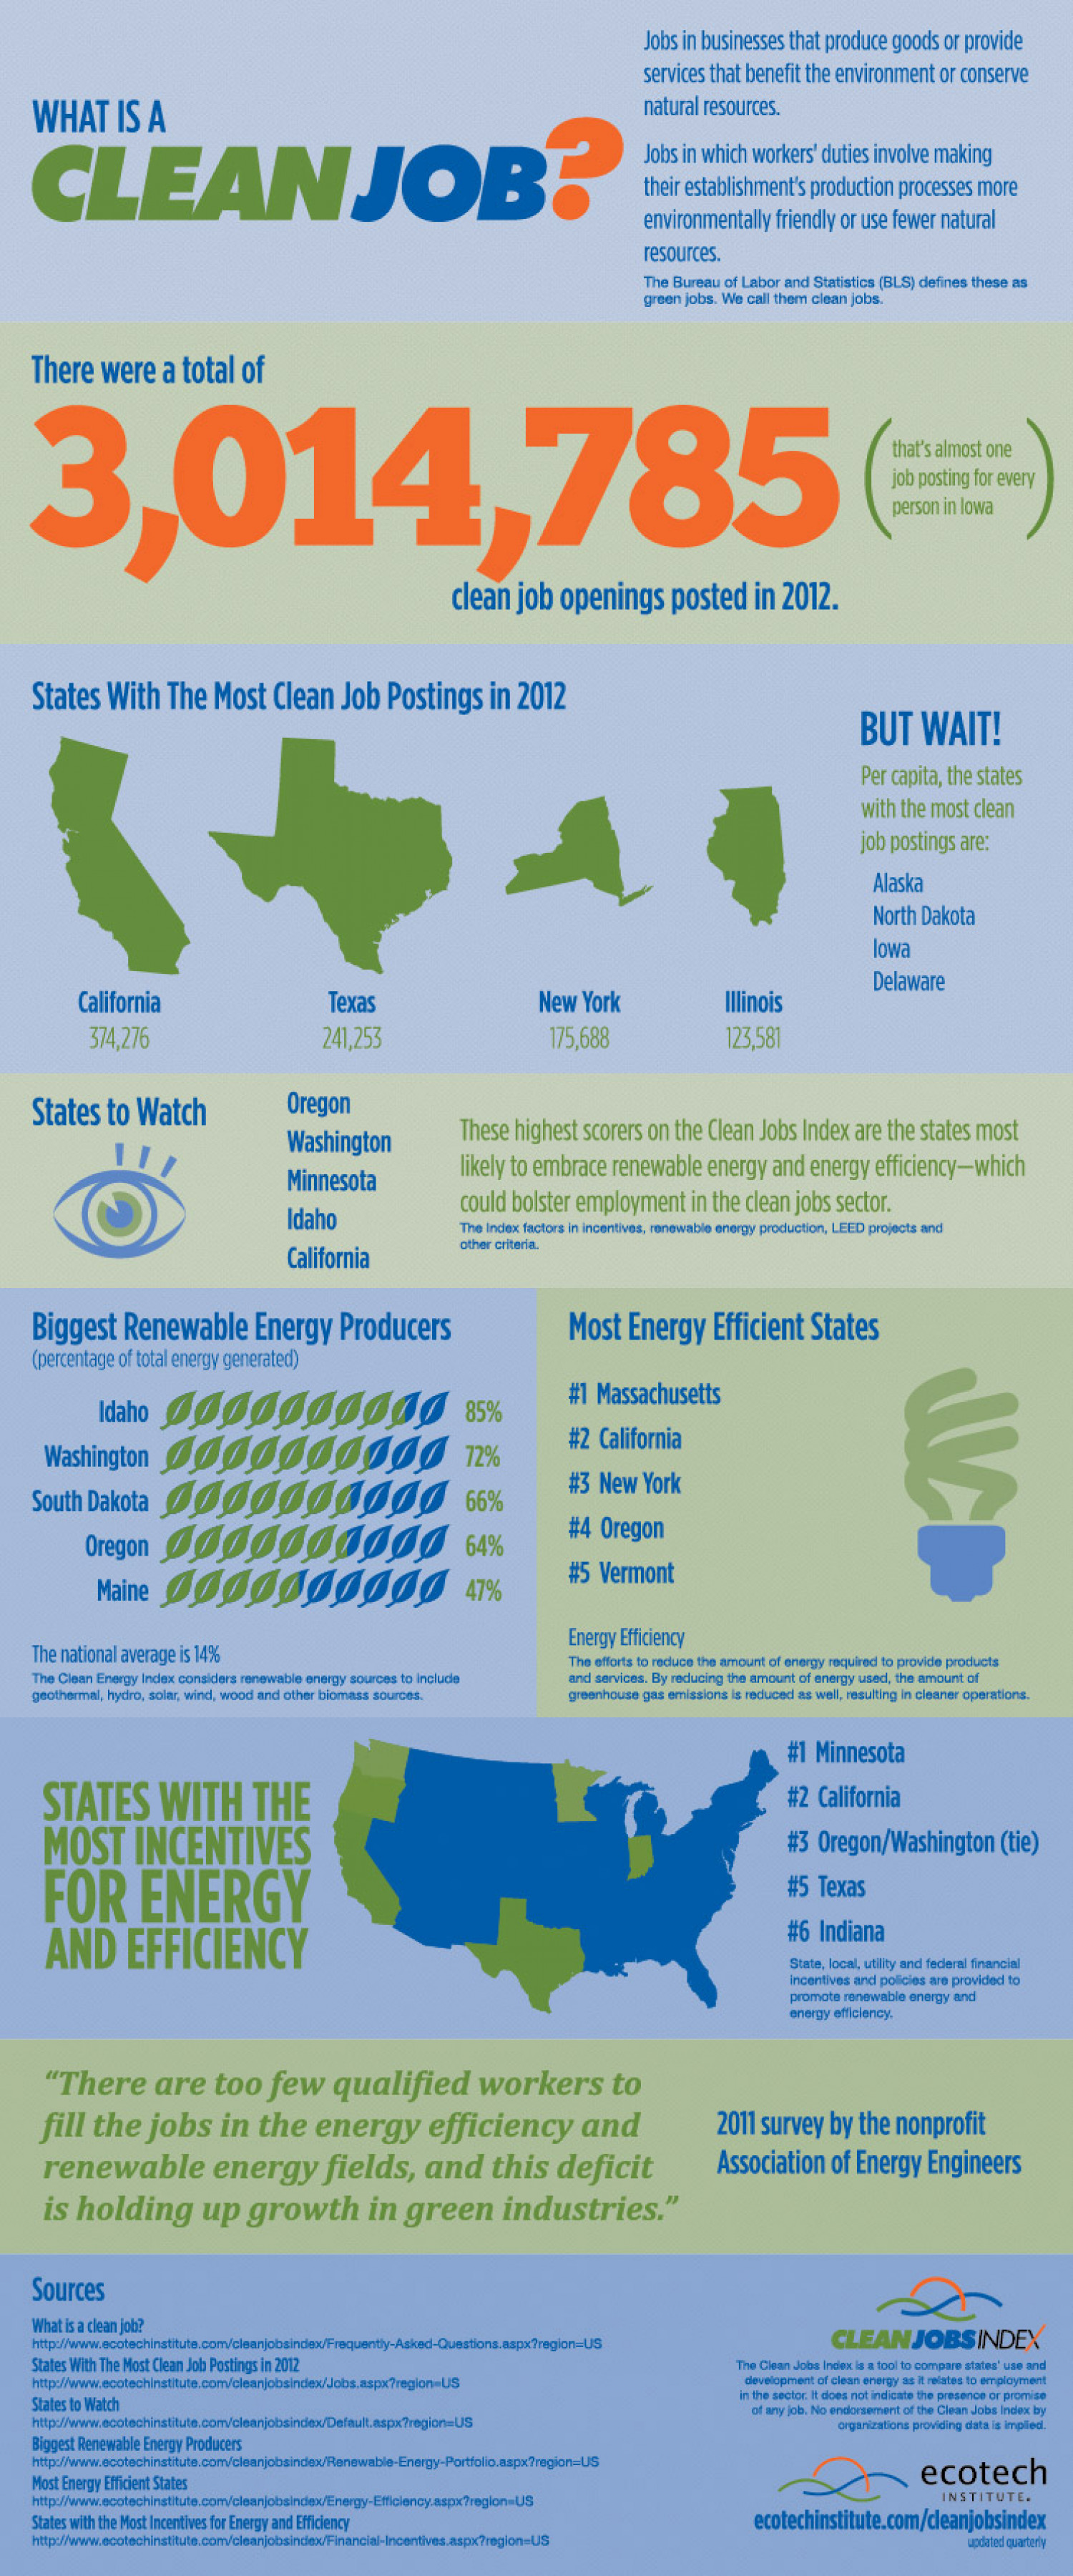 """Ecotech Institute's """"Clean Jobs Index"""" Infographic"""